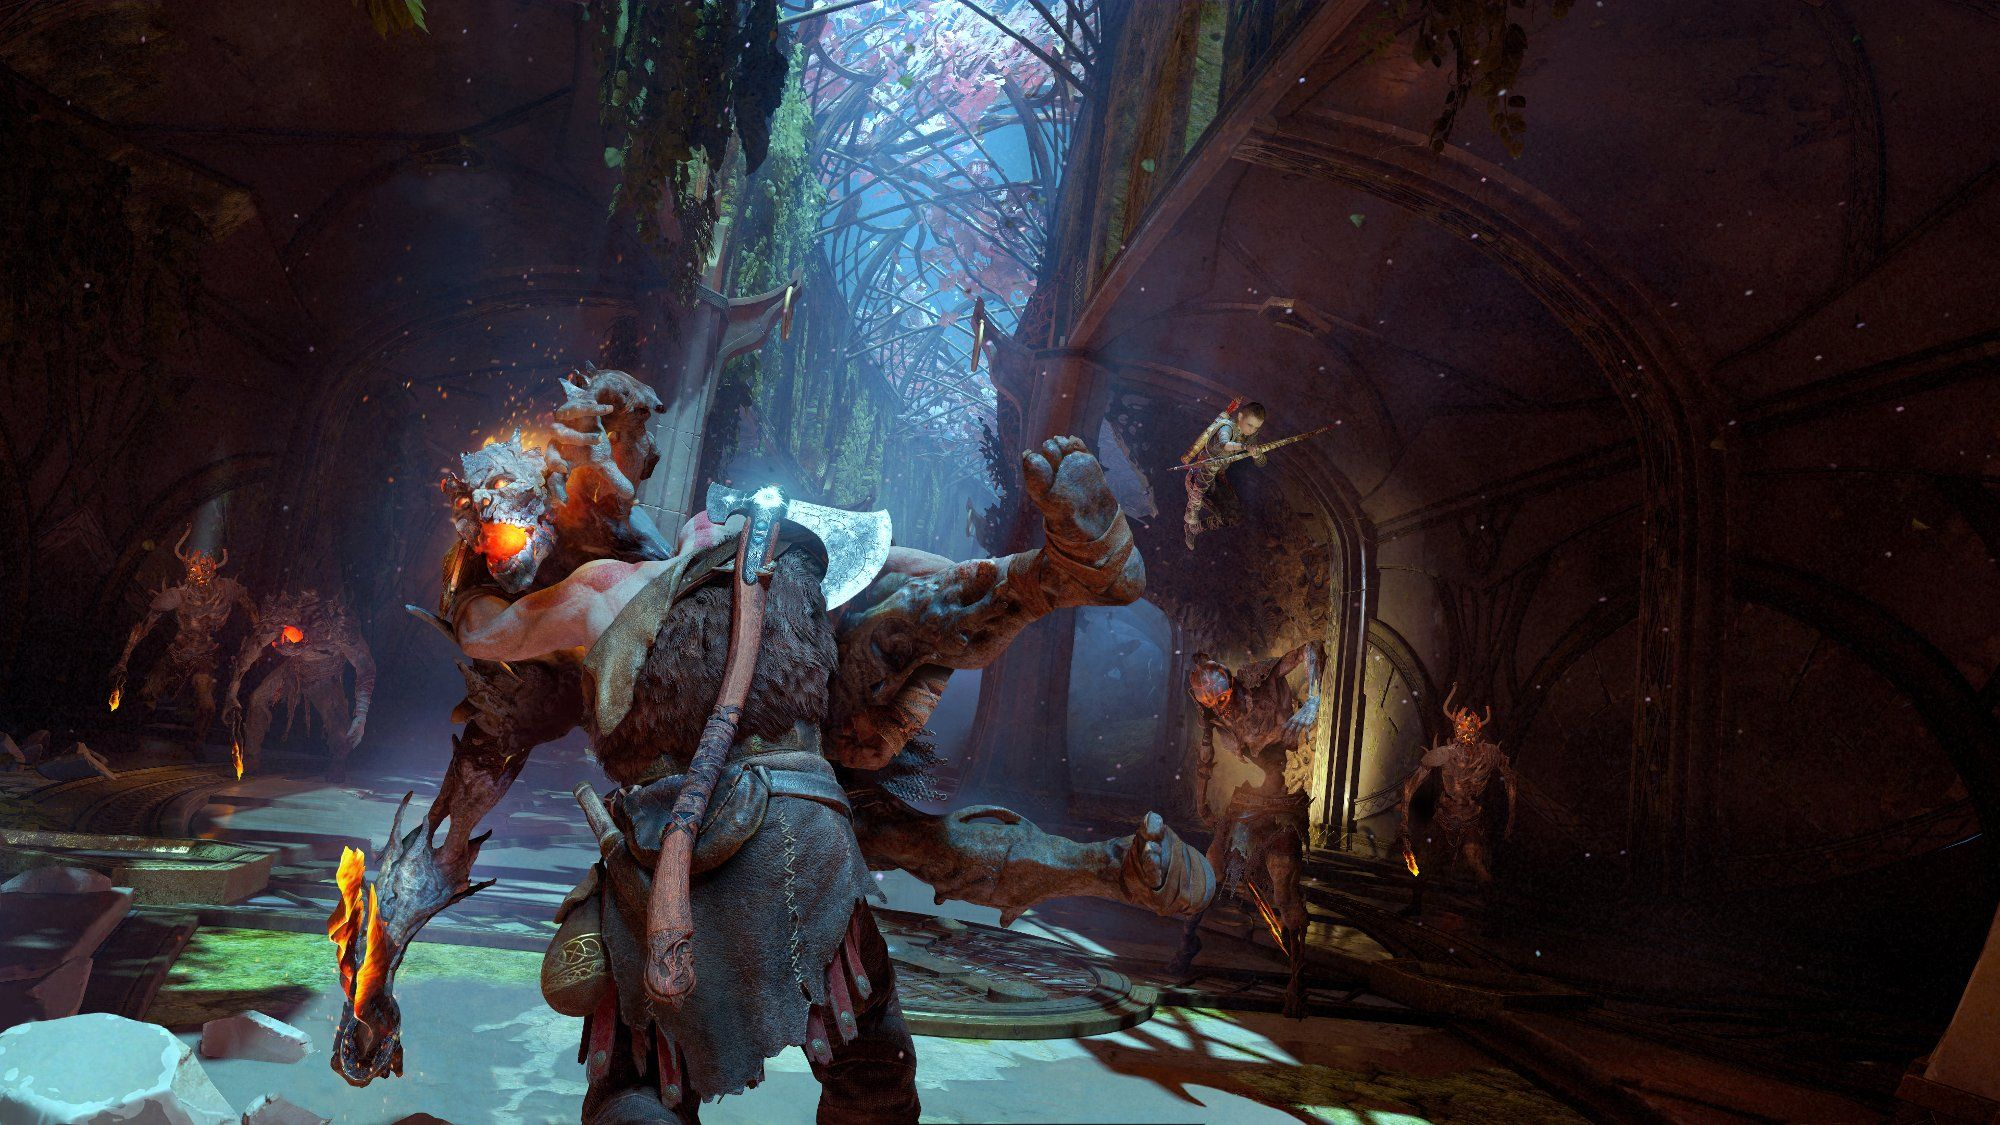 God Of War Ps4 Products In 2019 God Of War New Gods